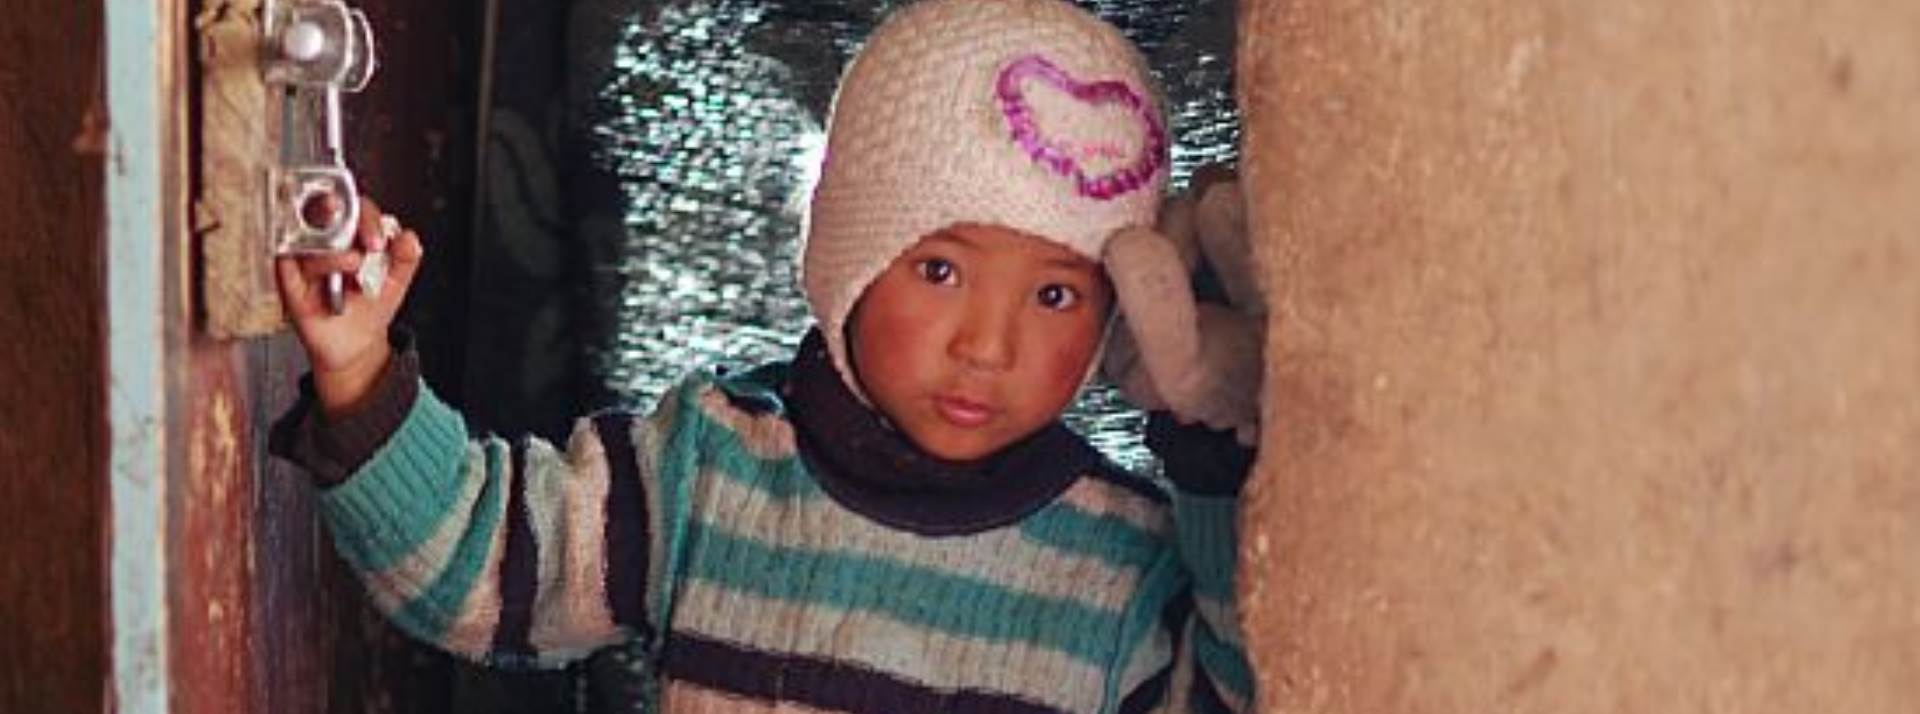 Himalayan Children is a Somerset based Charity working in Ladakh